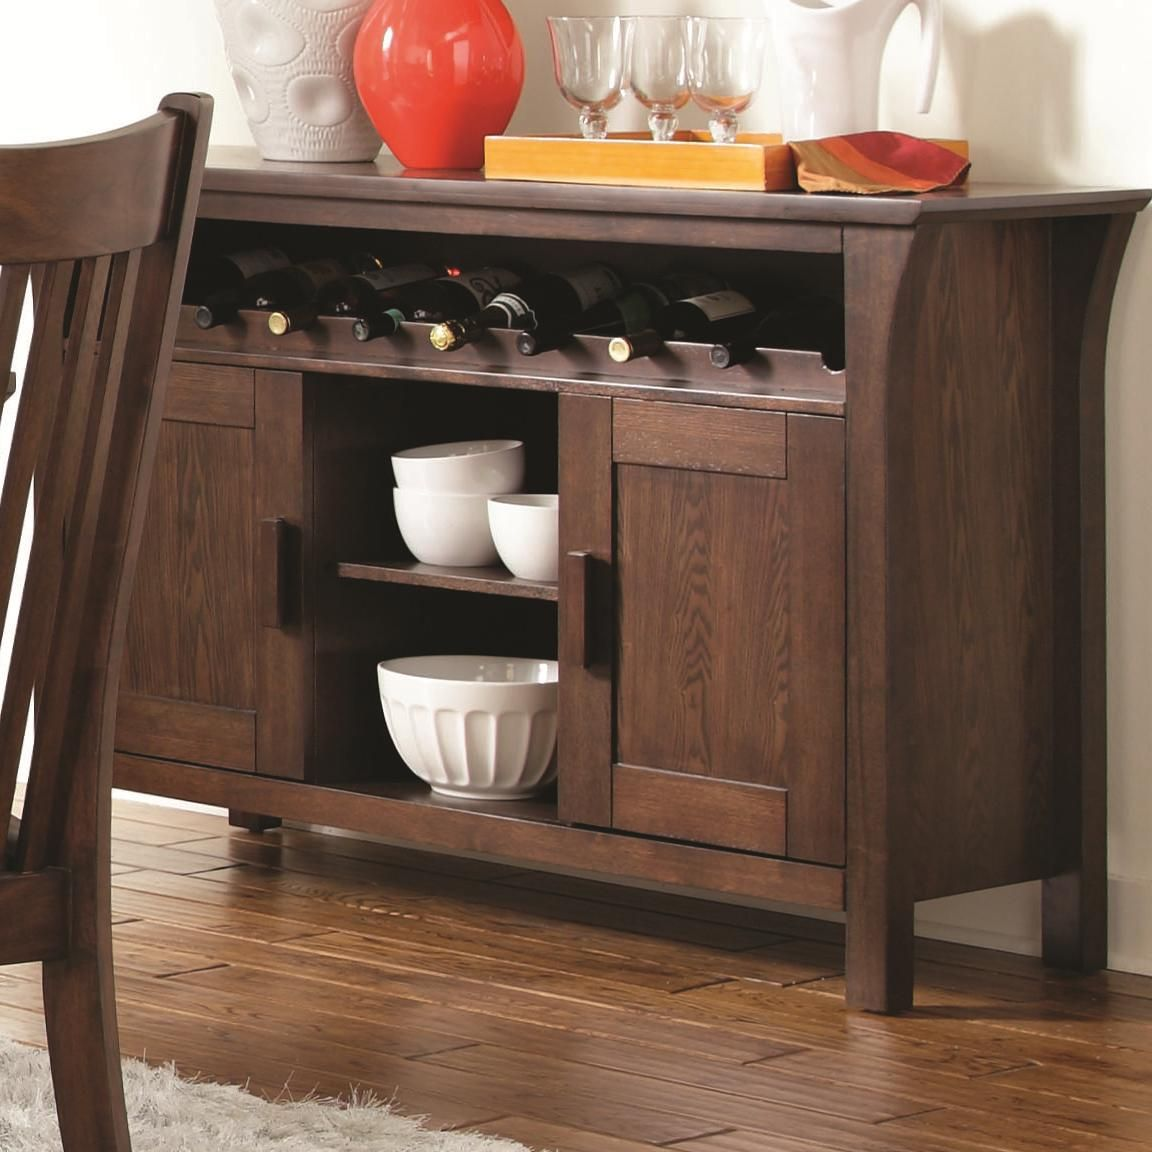 Coaster rivera 103645 brown wood buffet table in los angeles ca - Buffet table images ...